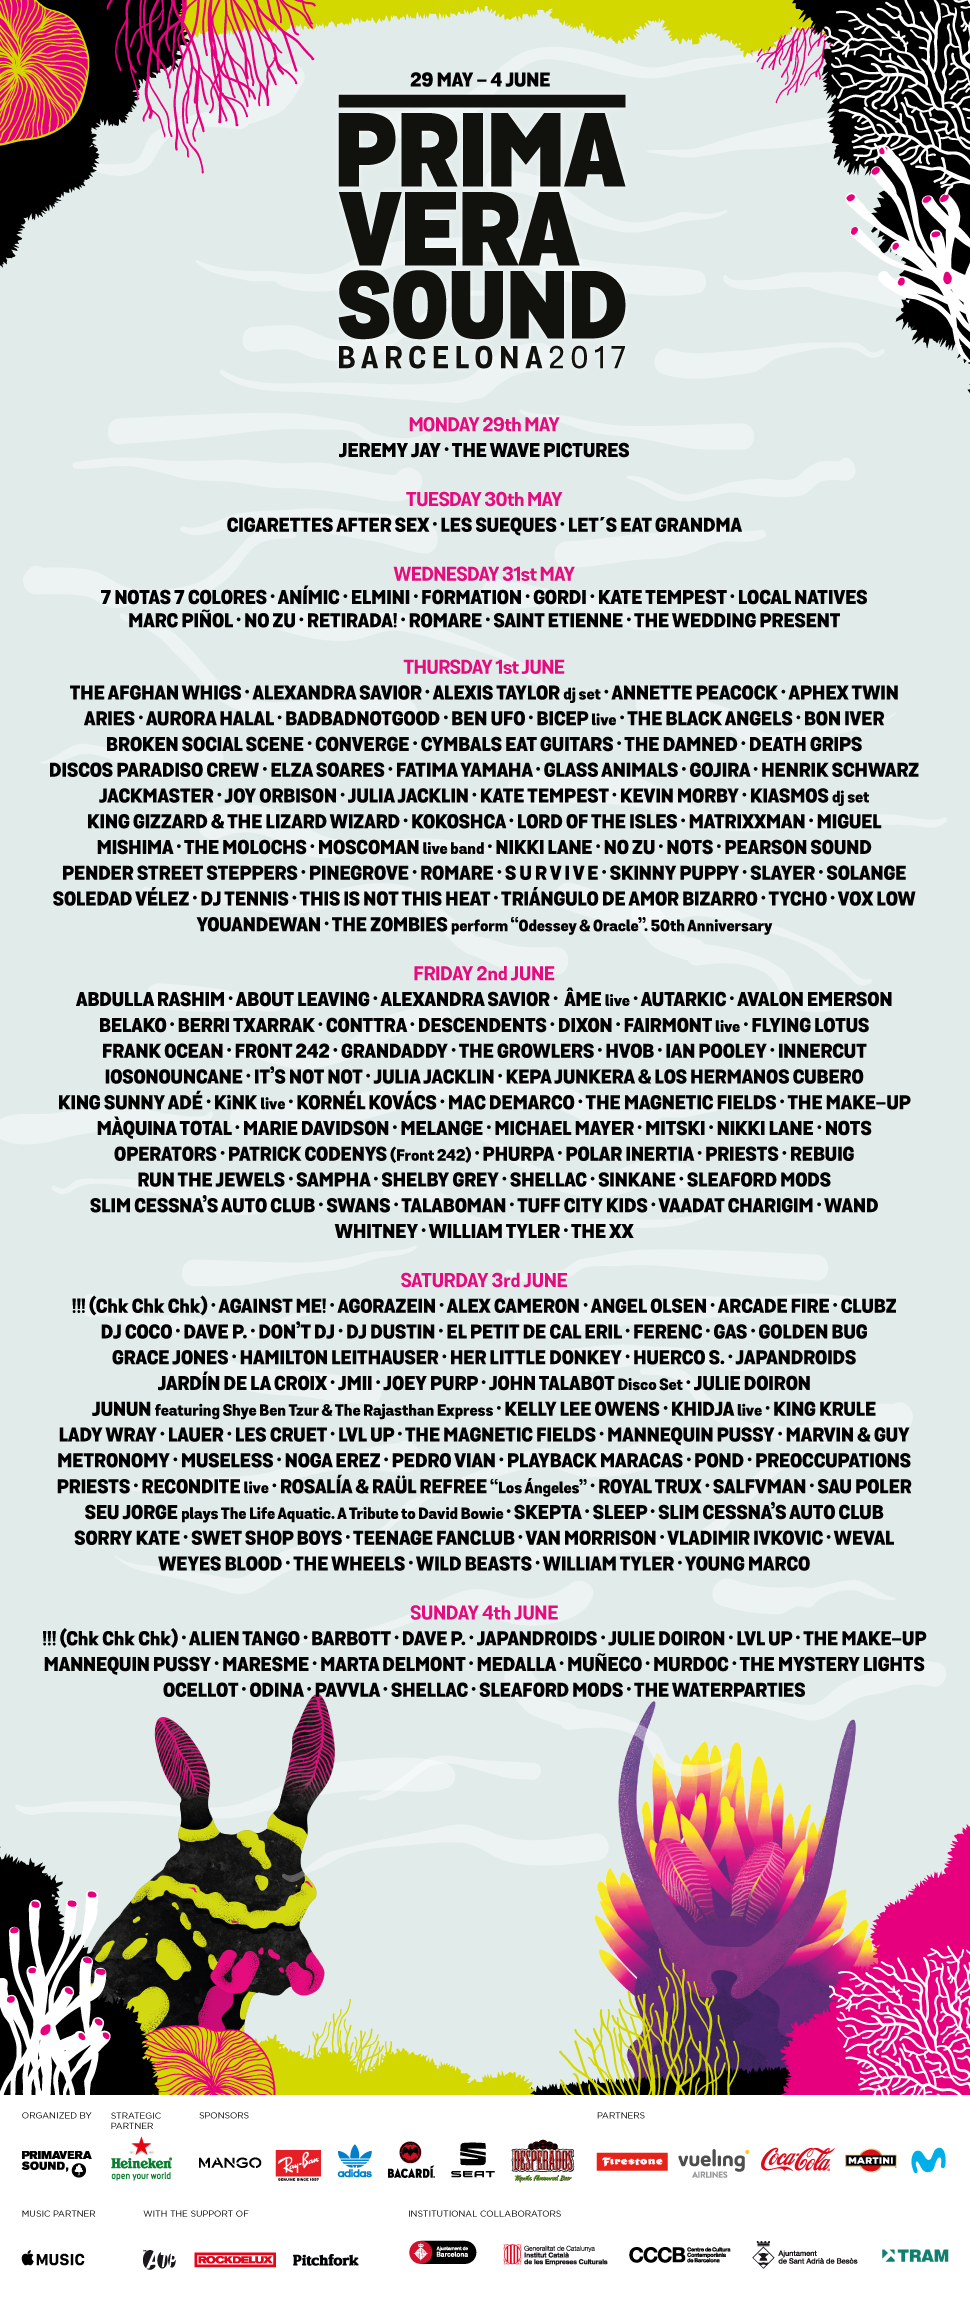 primavera sound line up Barcelona 2017